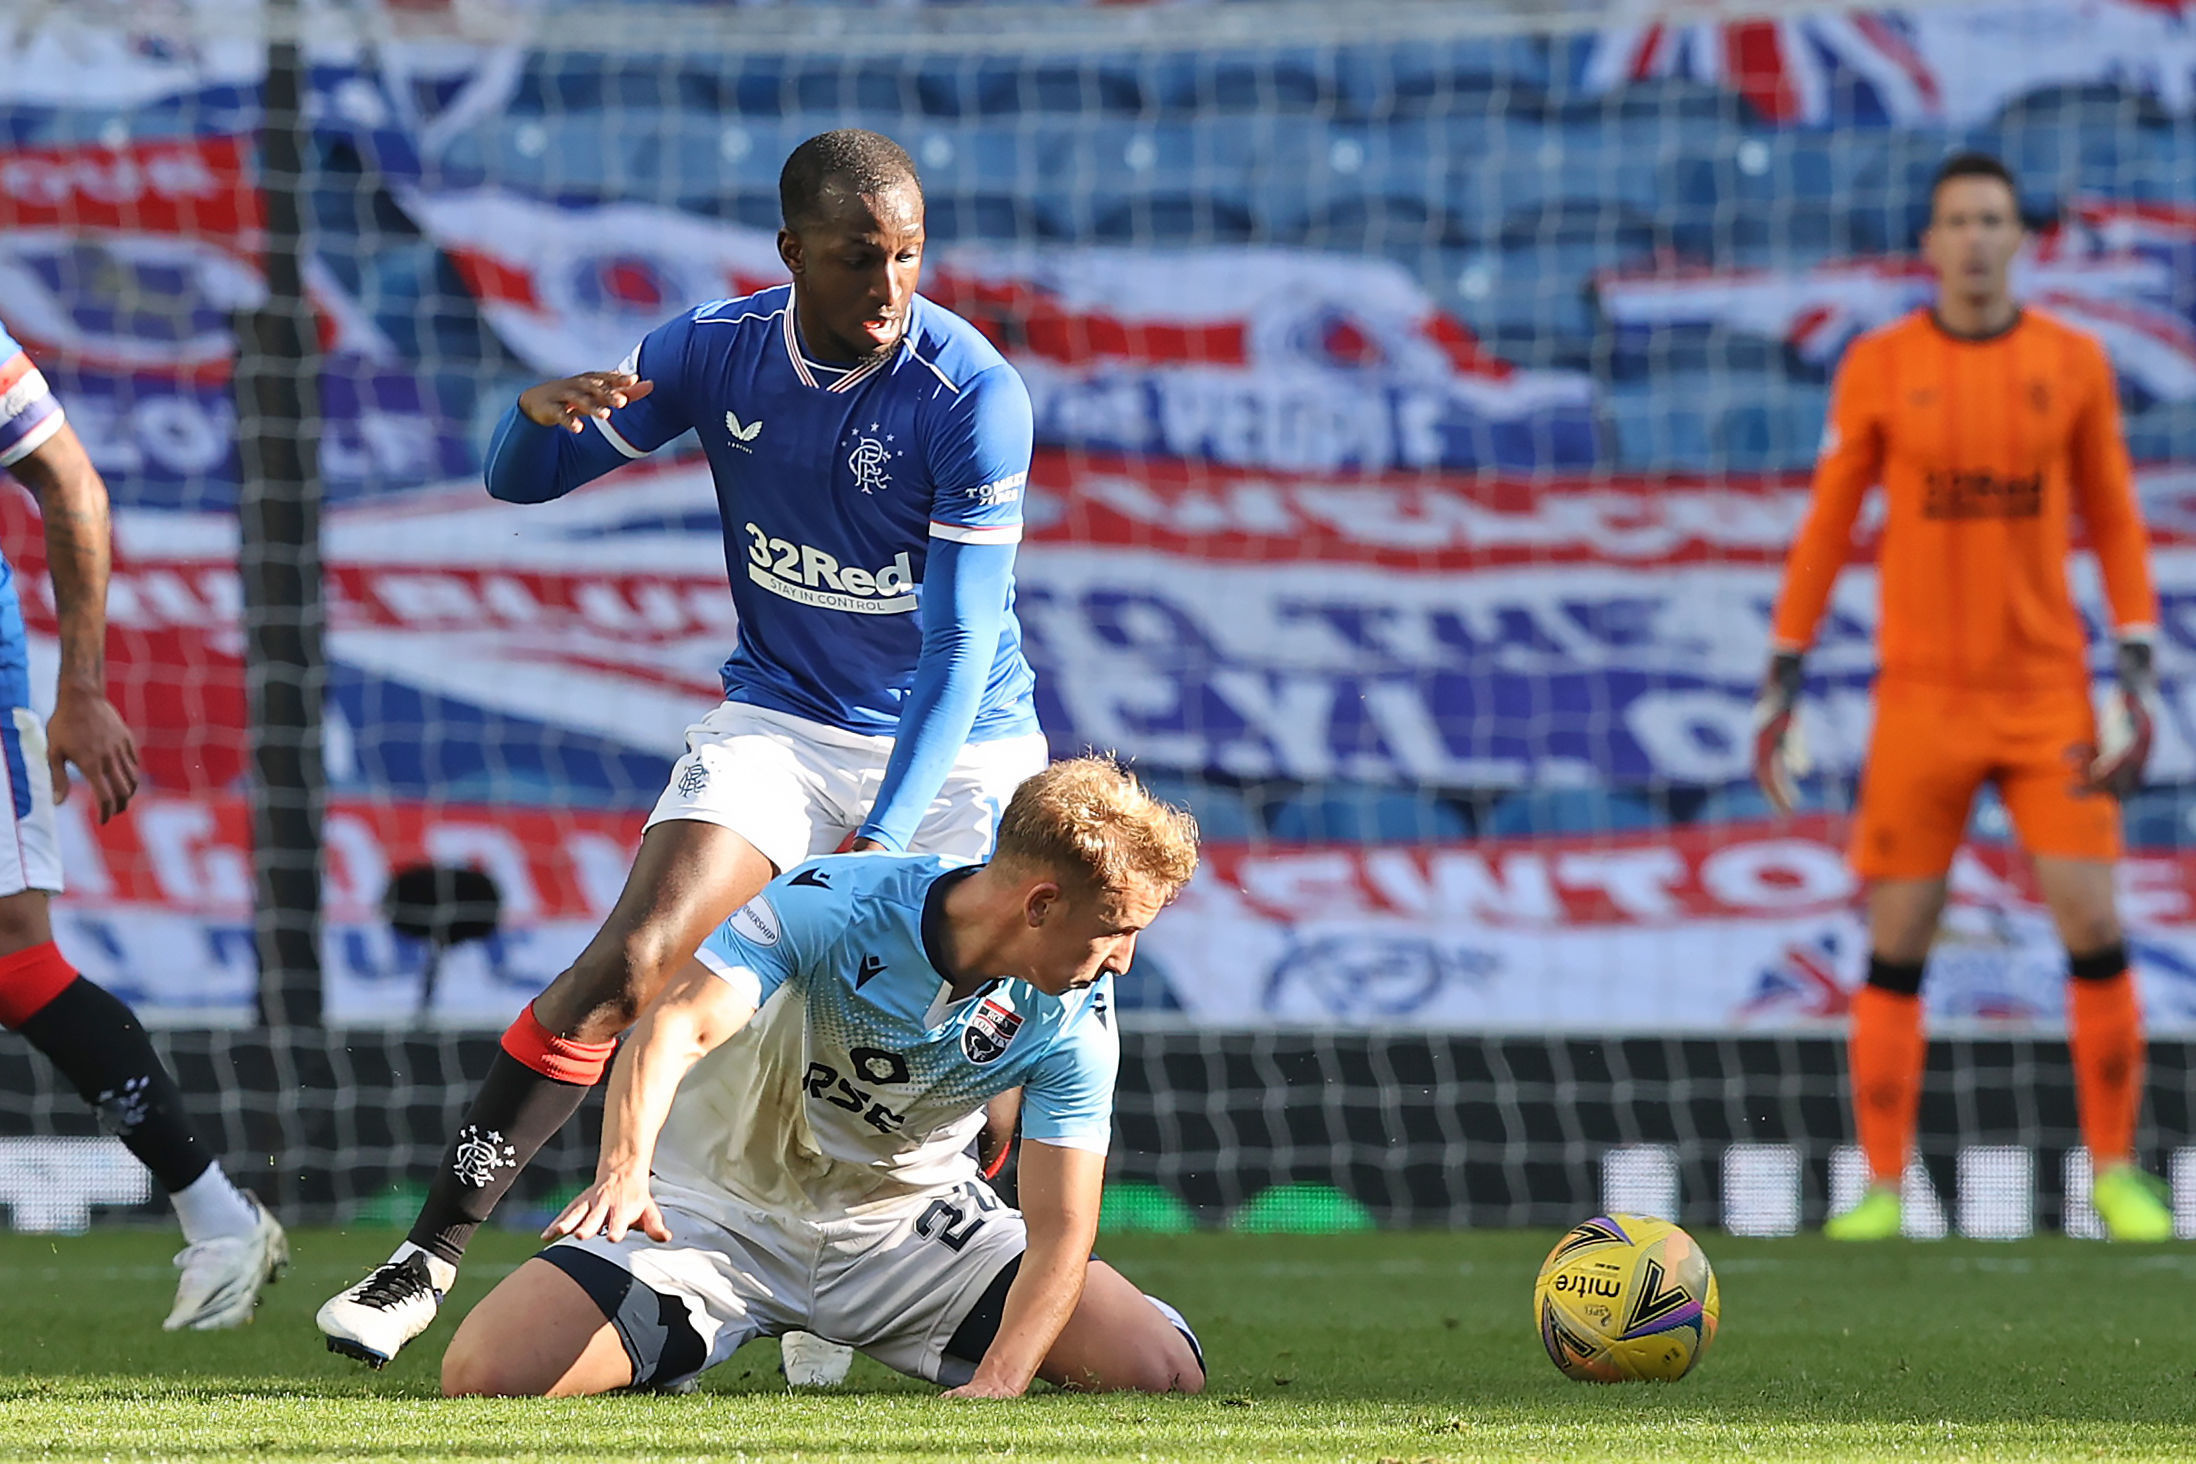 Glen Kamara has an ambition on his return to Rangers as midfielder impresses for Finland